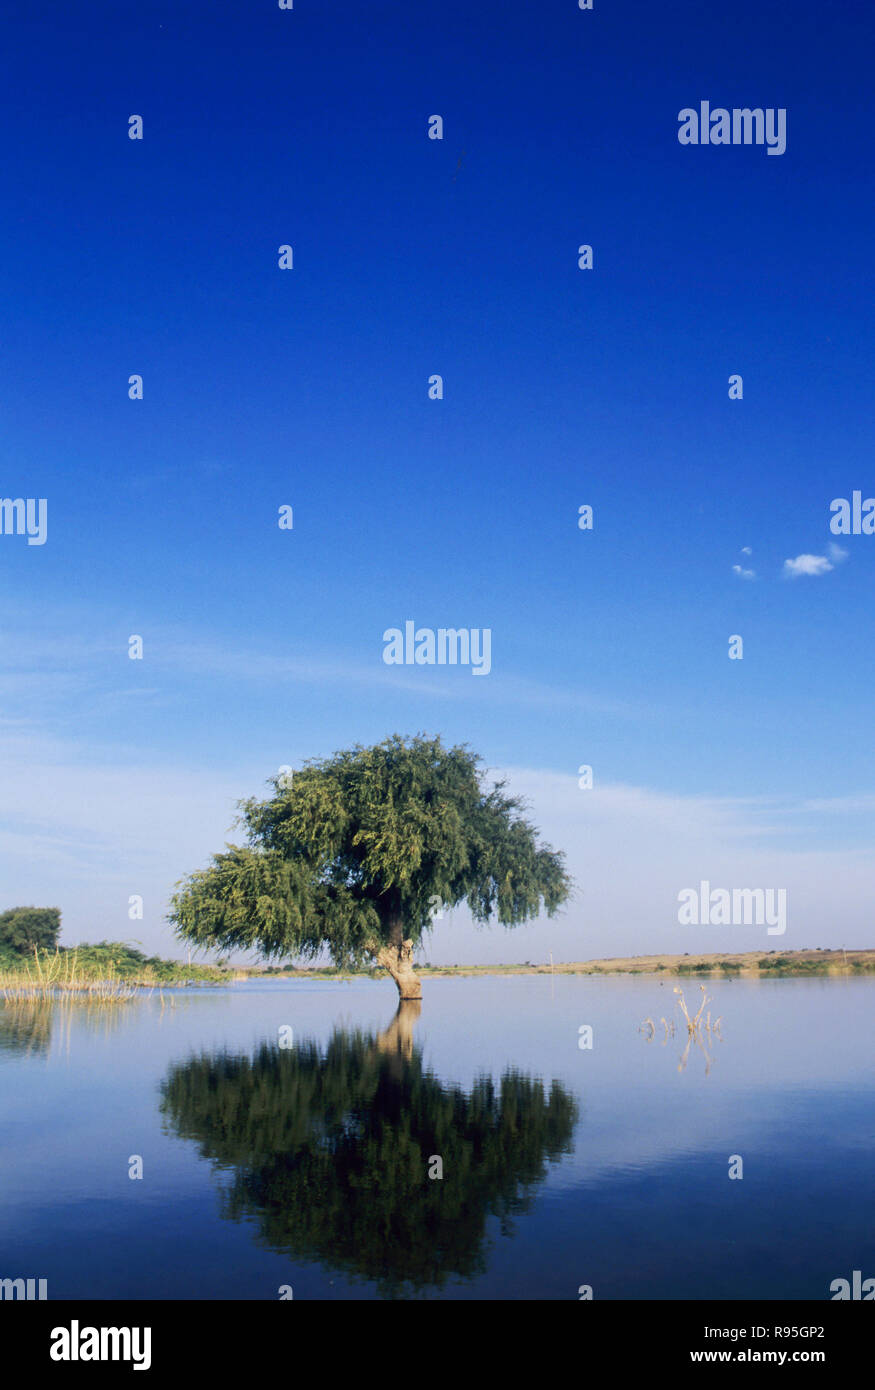 Single tree - Stock Image